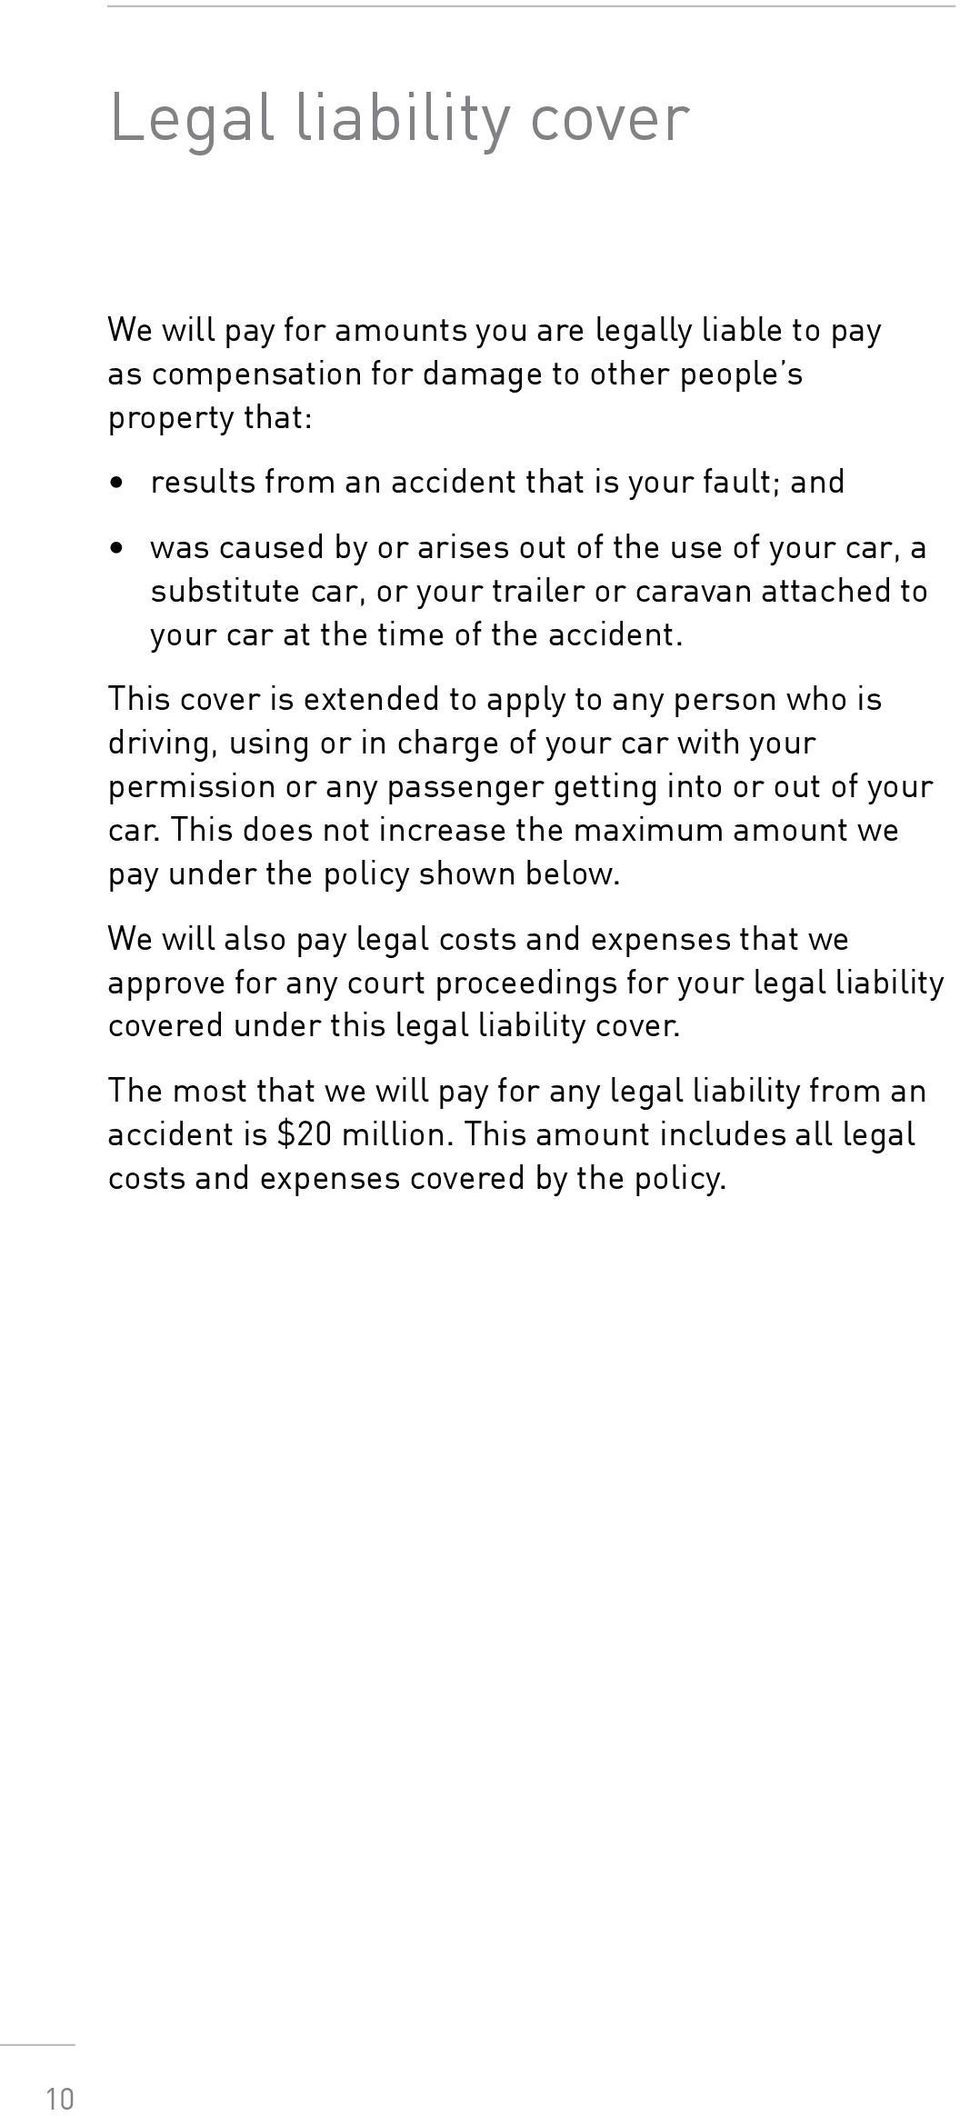 This cover is extended to apply to any person who is driving, using or in charge of your car with your permission or any passenger getting into or out of your car.